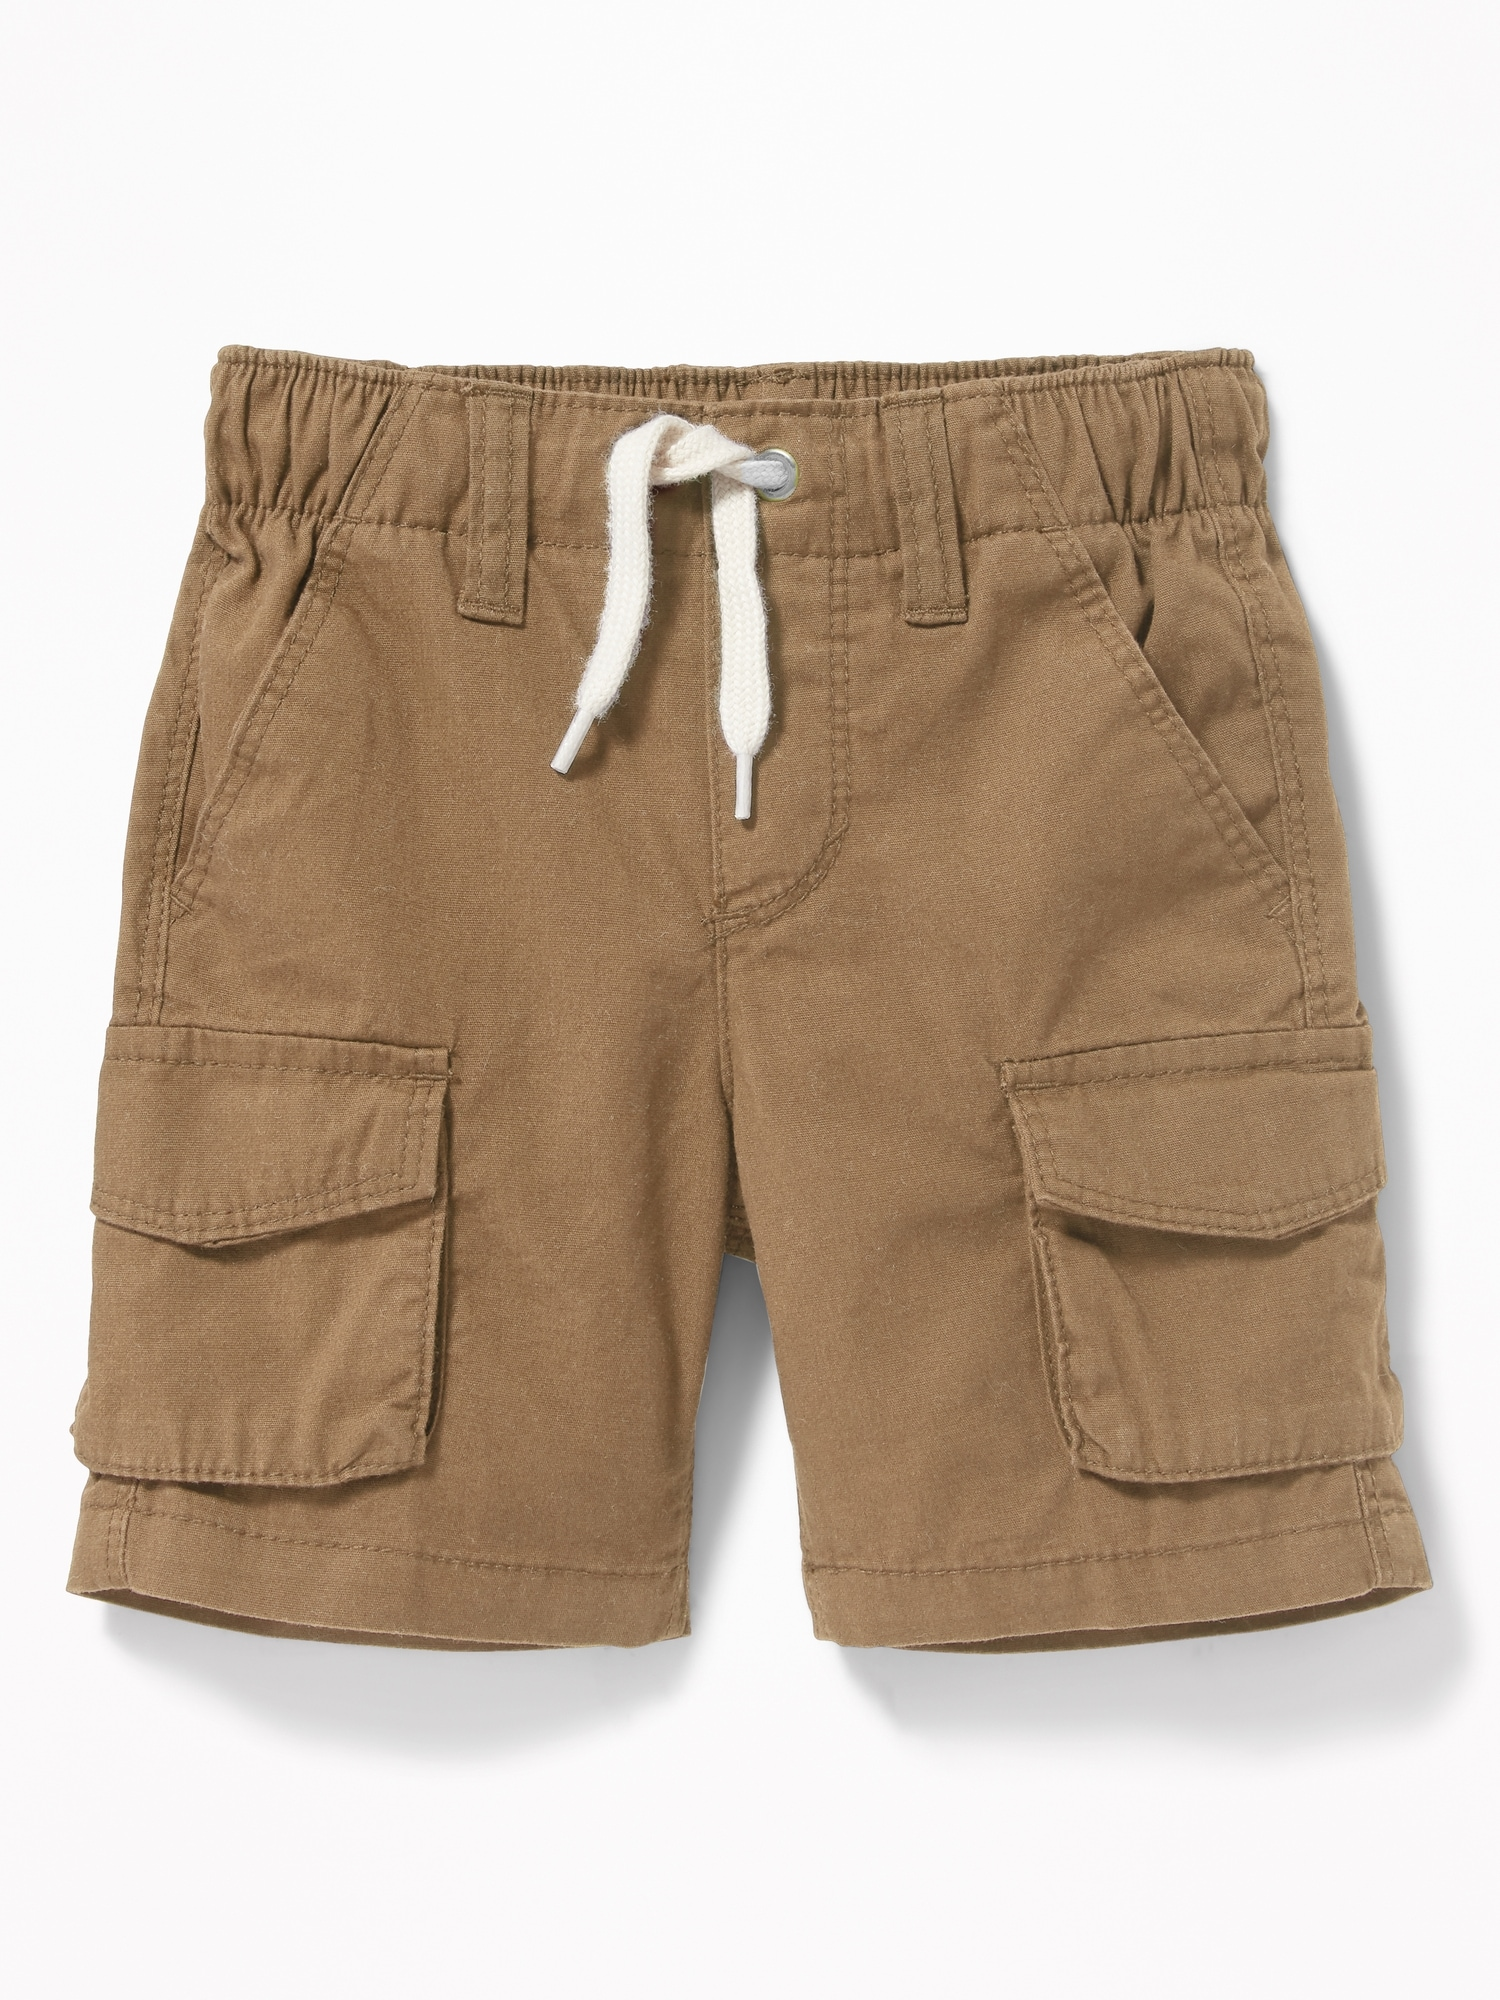 6bdee6c93ee Functional Drawstring Pull-On Cargo Shorts for Toddler Boys